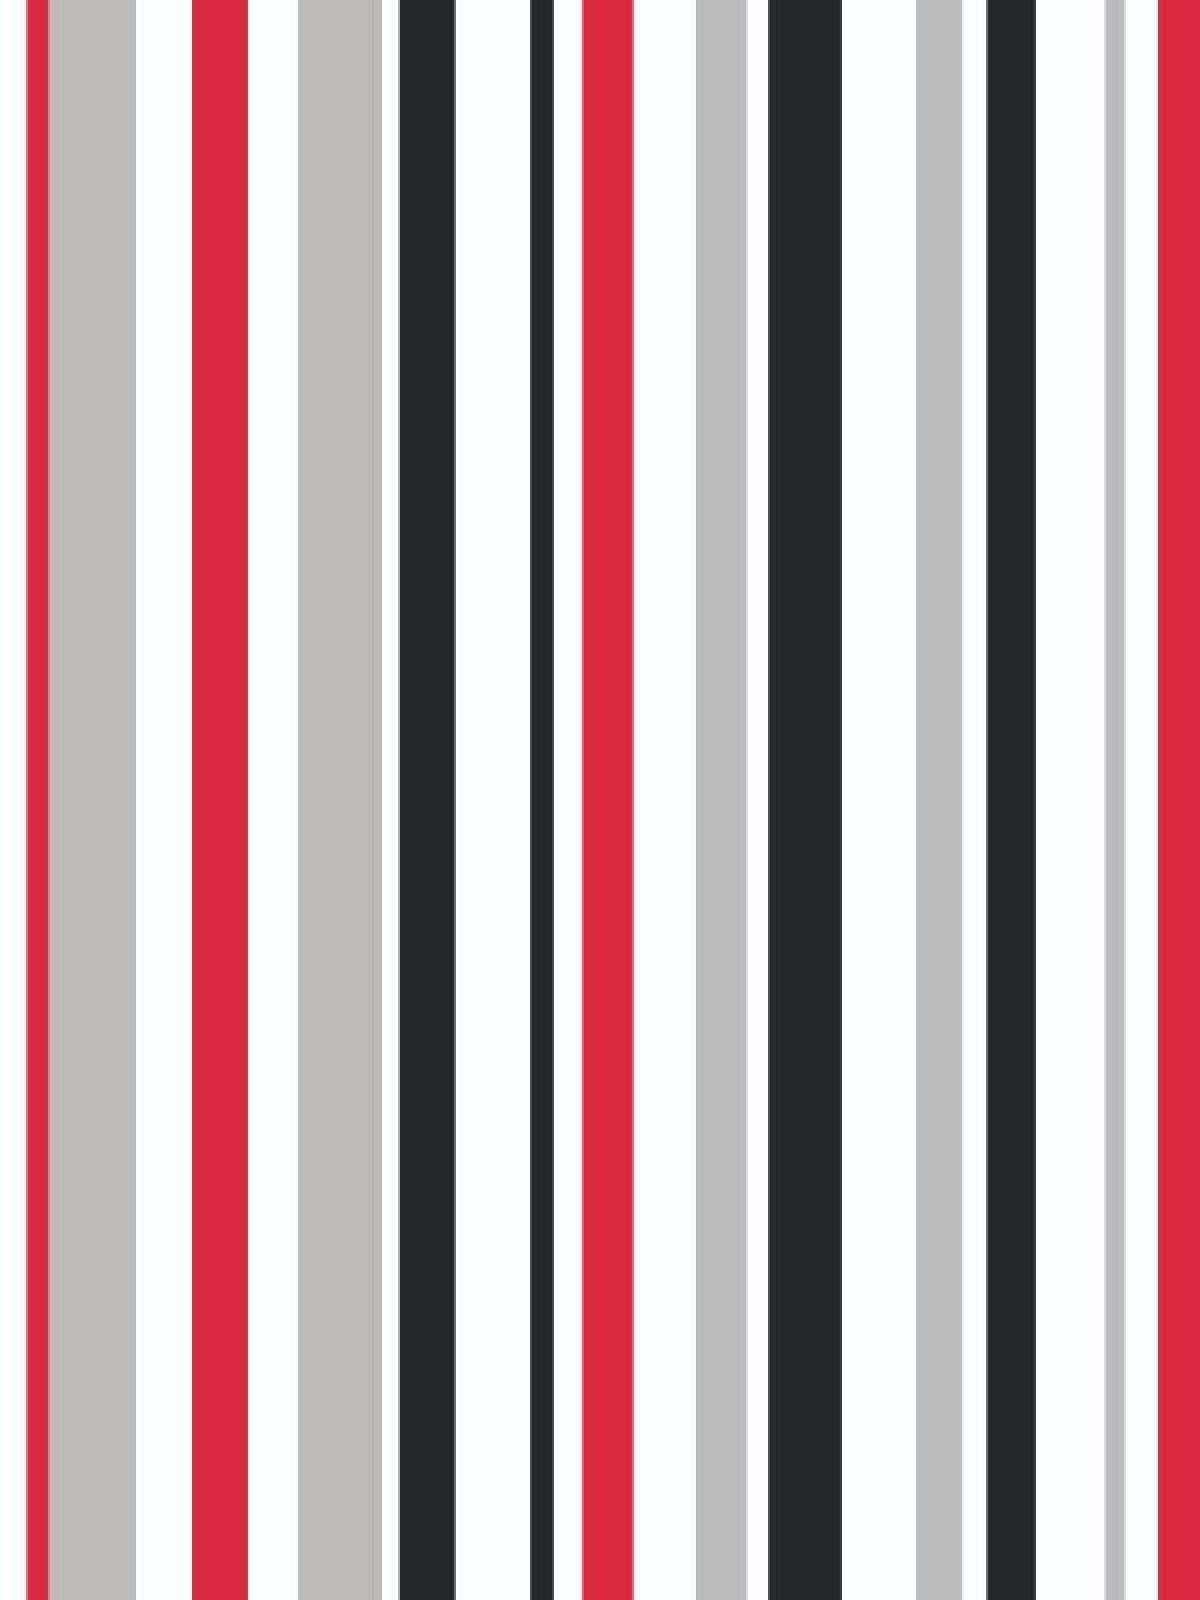 Black White Striped Wallpaper   Wallpapers High Definition 1200x1600